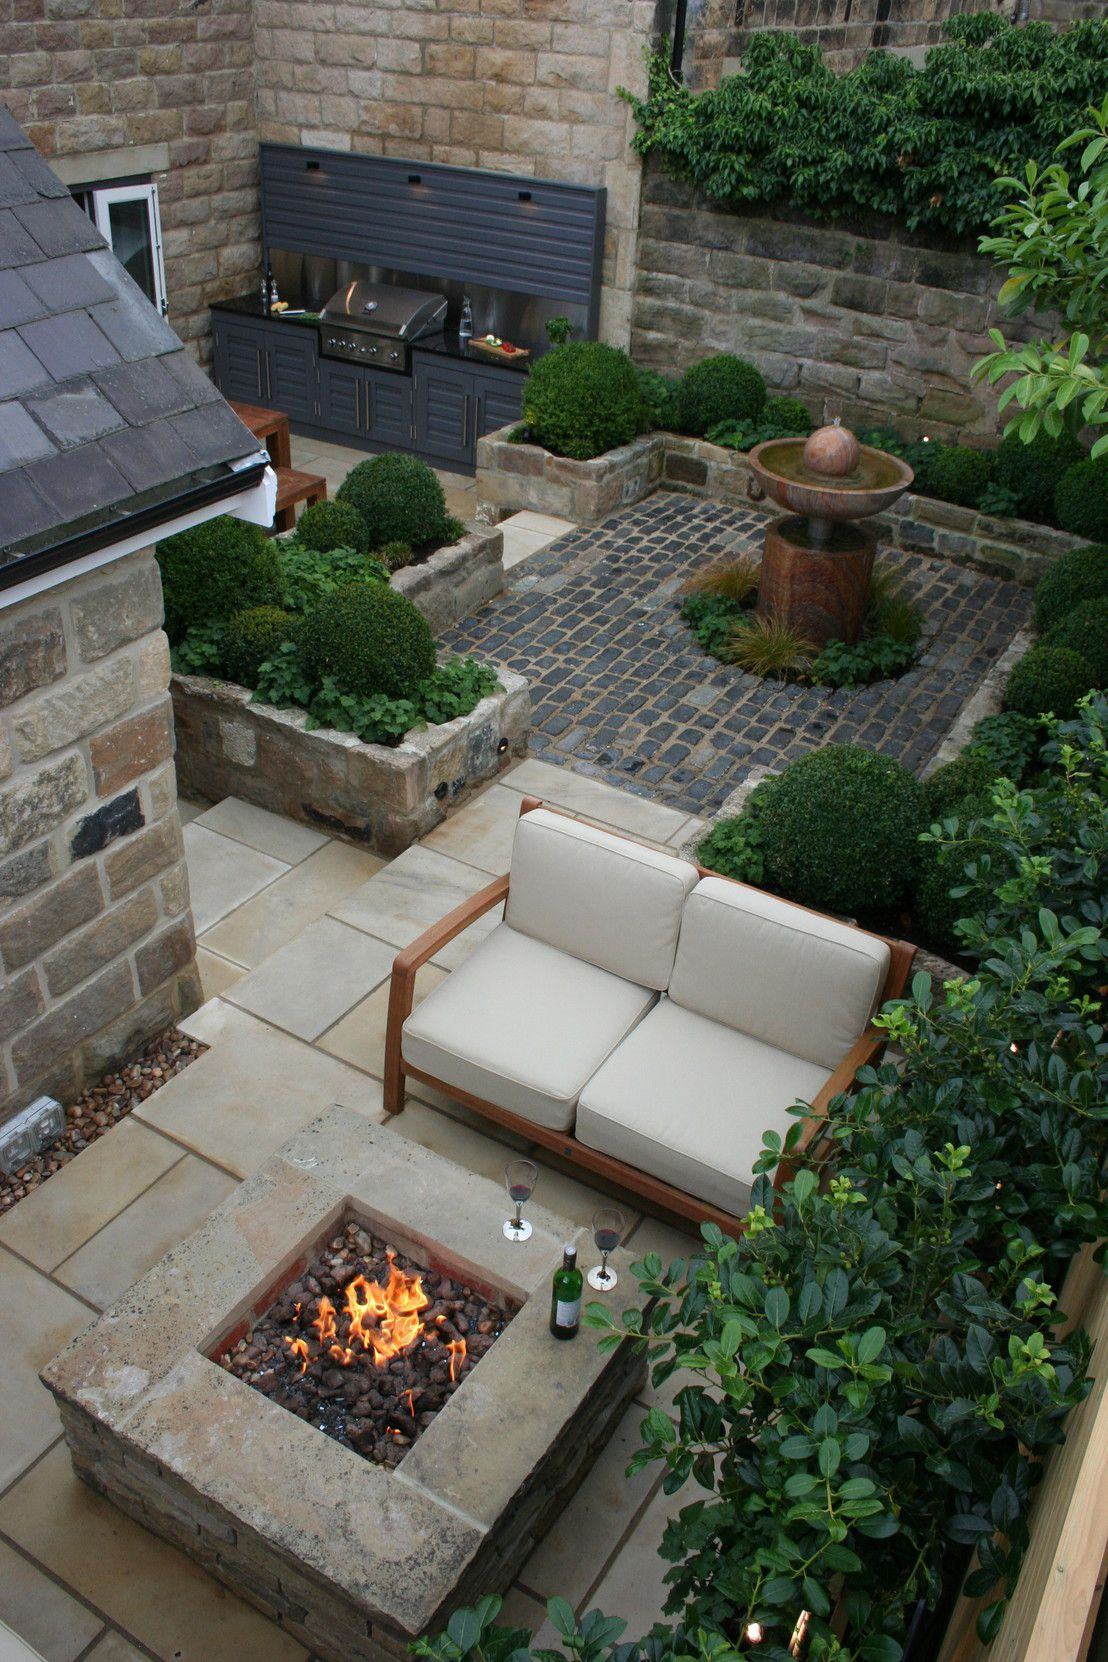 Urban Courtyard for Entertaining by Bestall & Co Landscape ... on Small Backyard Entertainment Area Ideas id=42837